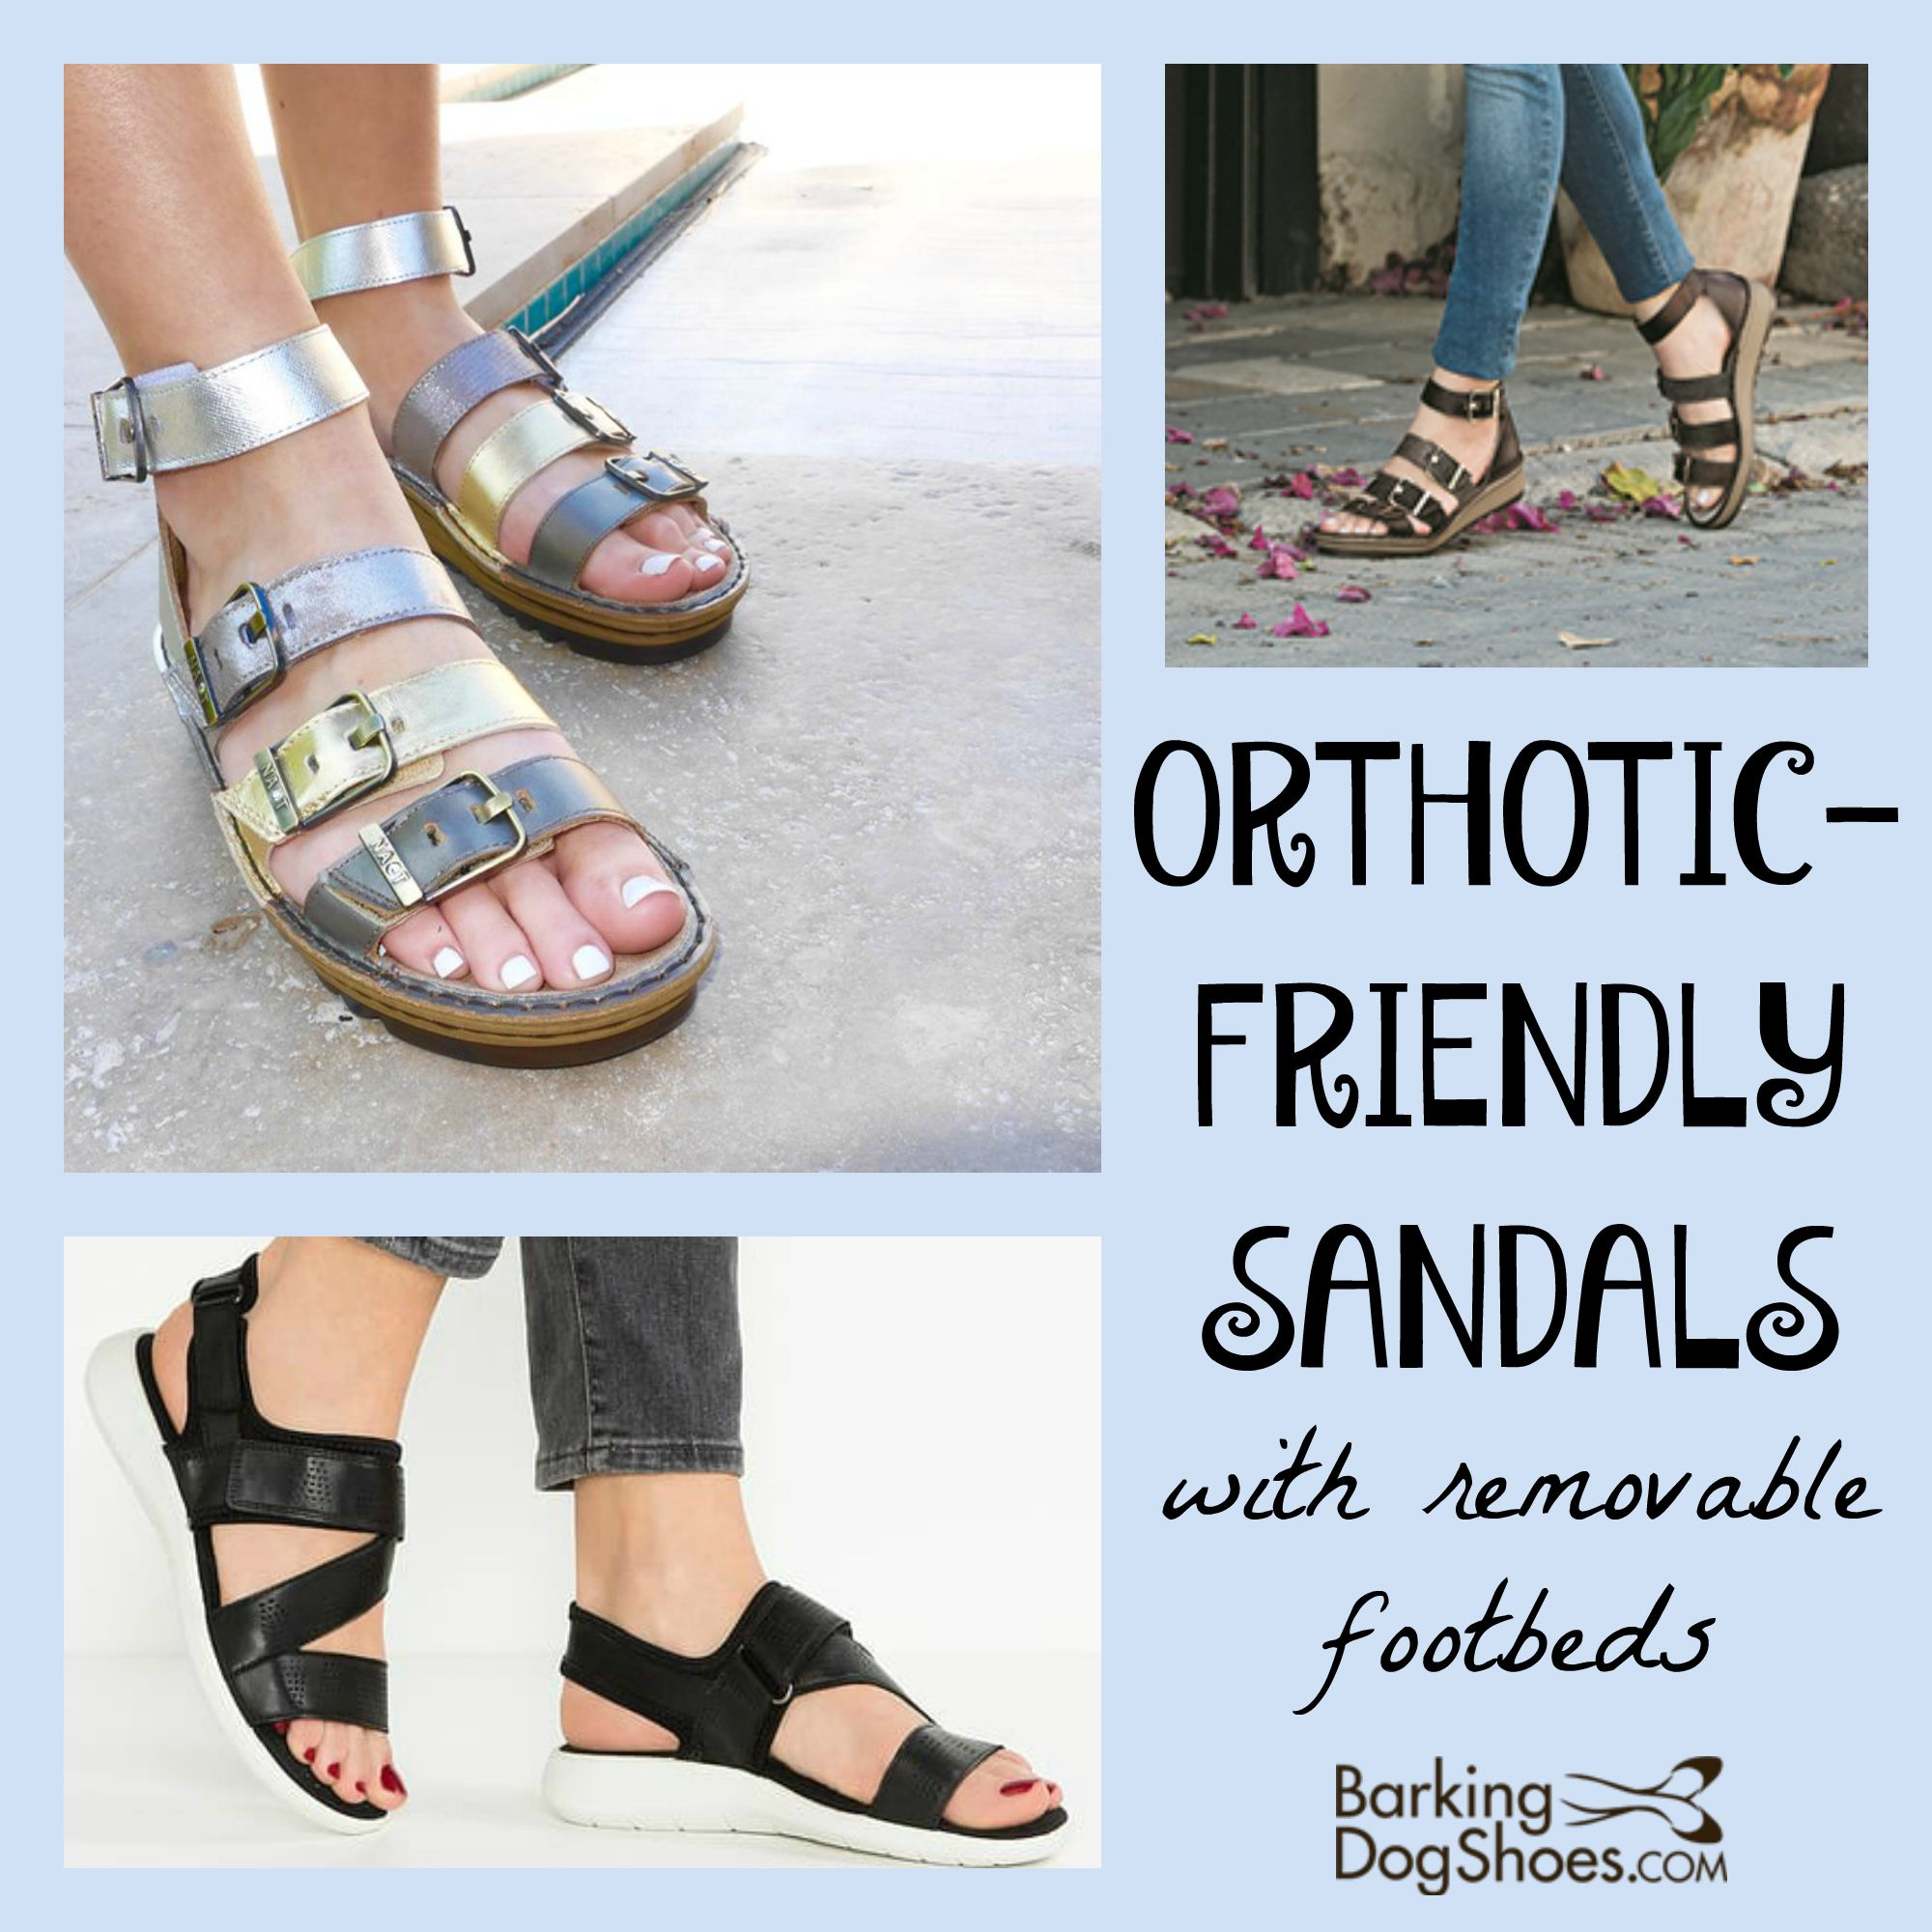 Women's sandals good for plantar fasciitis uk - 5 Stylish Orthotic Friendly Sandals With Removable Footbeds Comfortable Sandalsplantar Fasciitissummer Sandals